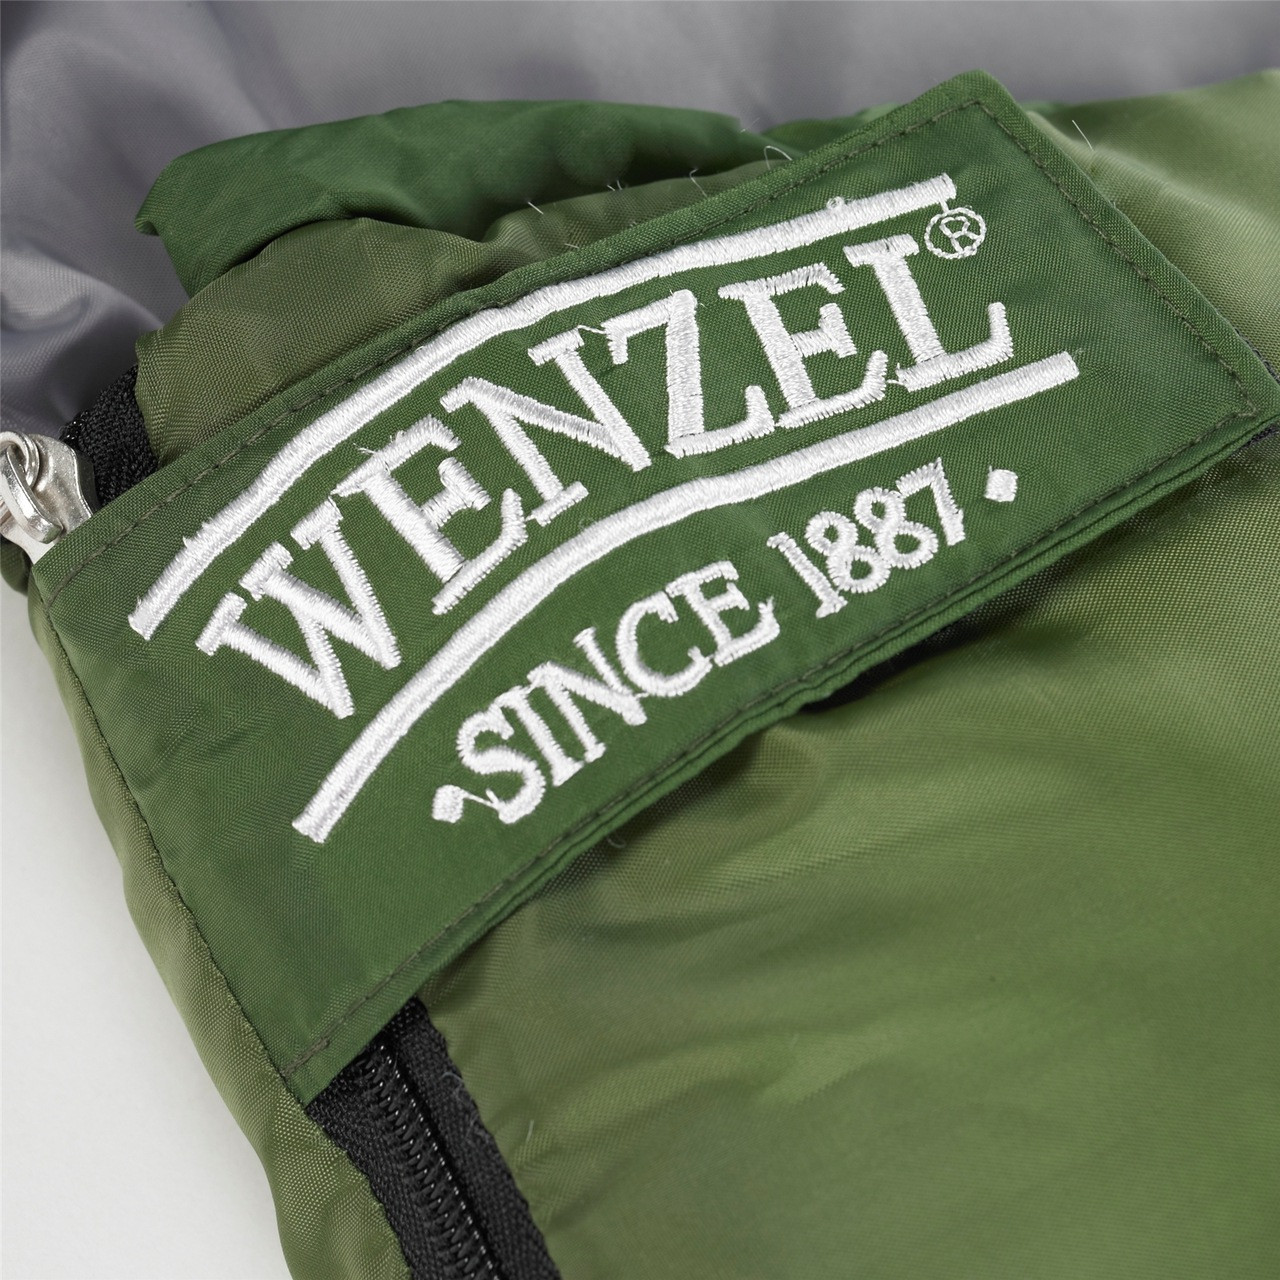 Close up view of the Velcro latch below the zipper on the Wenzel Kids Backyard 30 degree sleeping bag, green